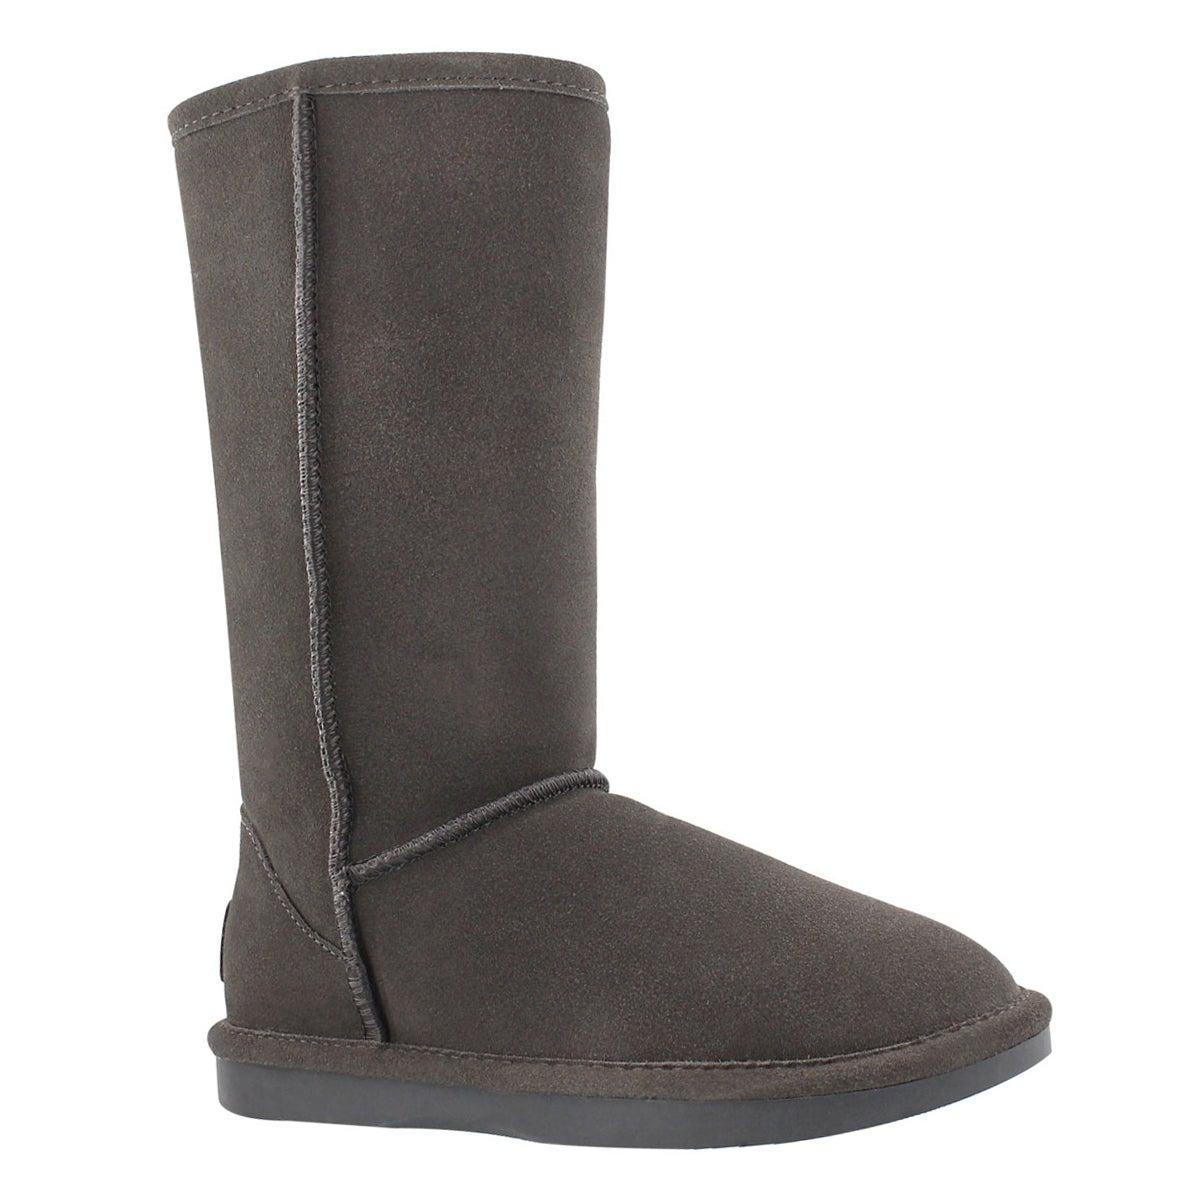 Women's SMOCS 5 grey tall suede boots